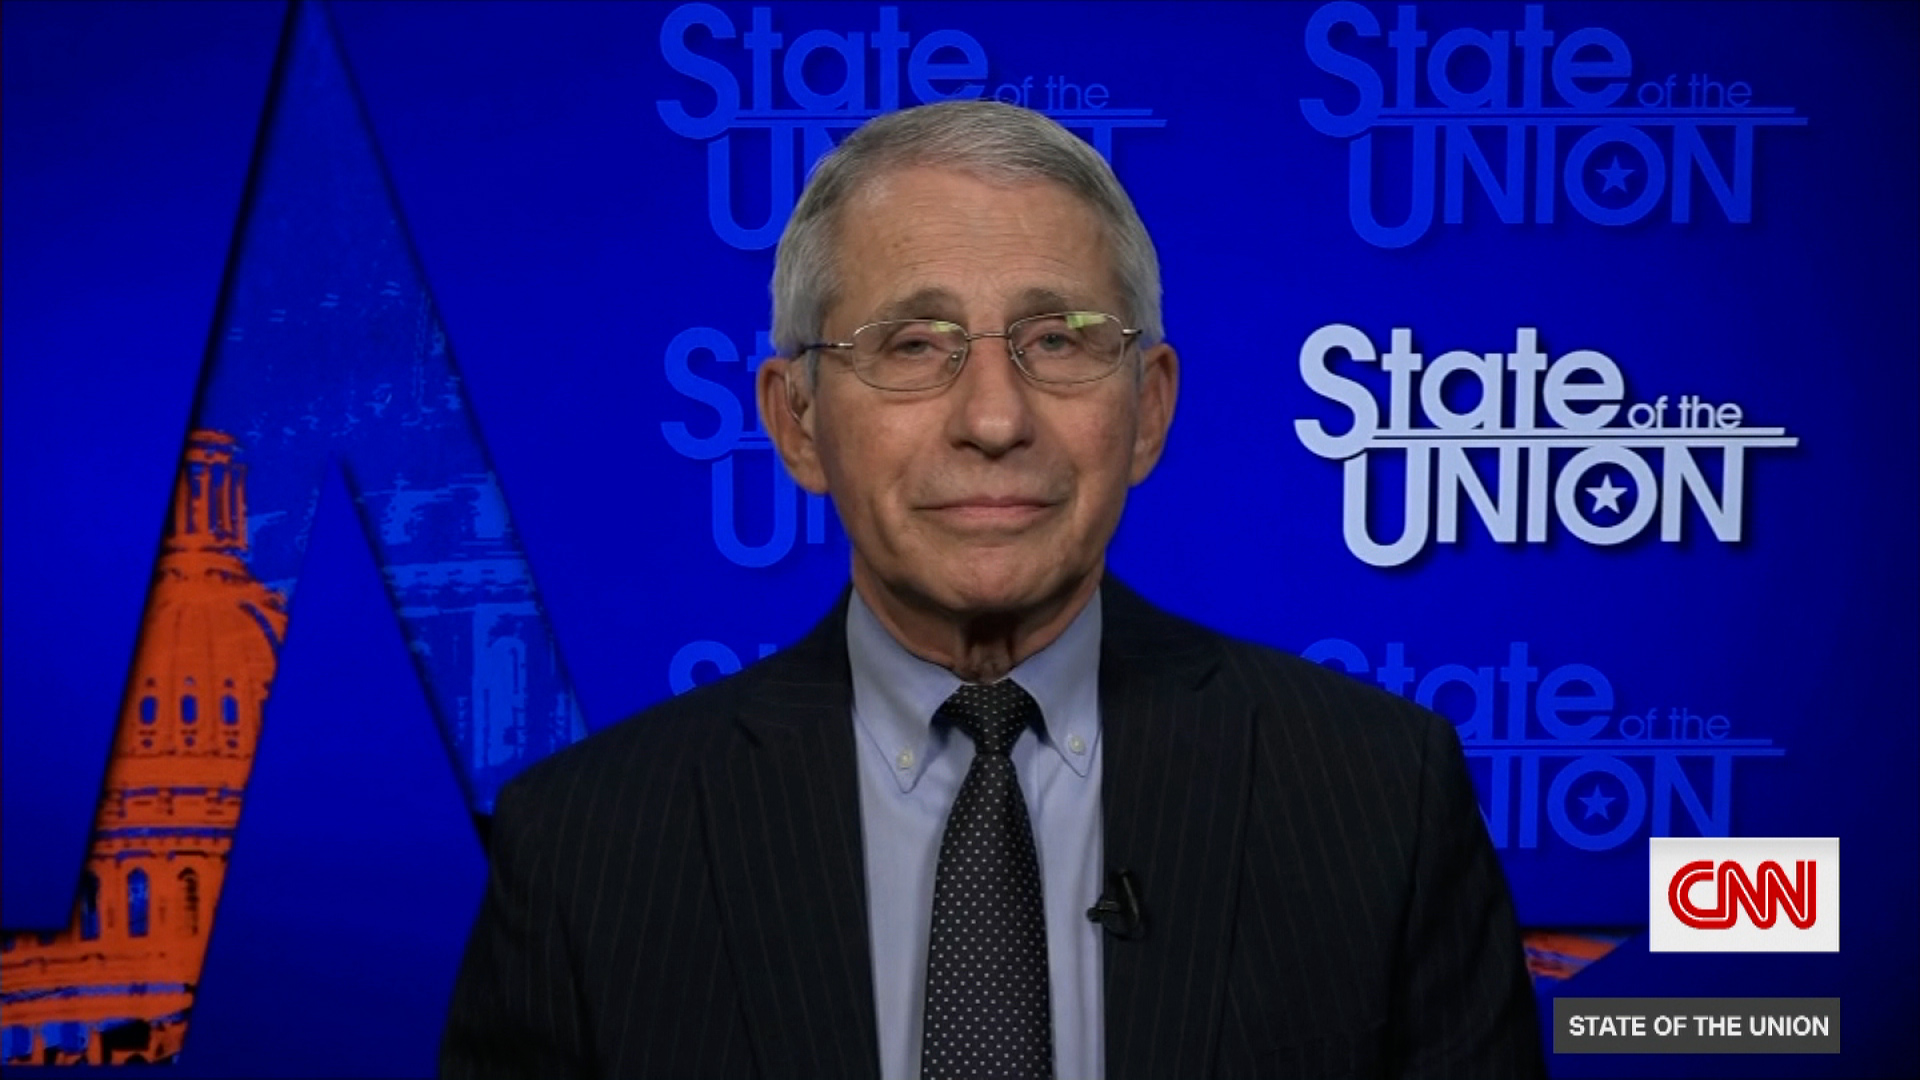 Fauci and Gupta: Reflections on the year of the coronavirus